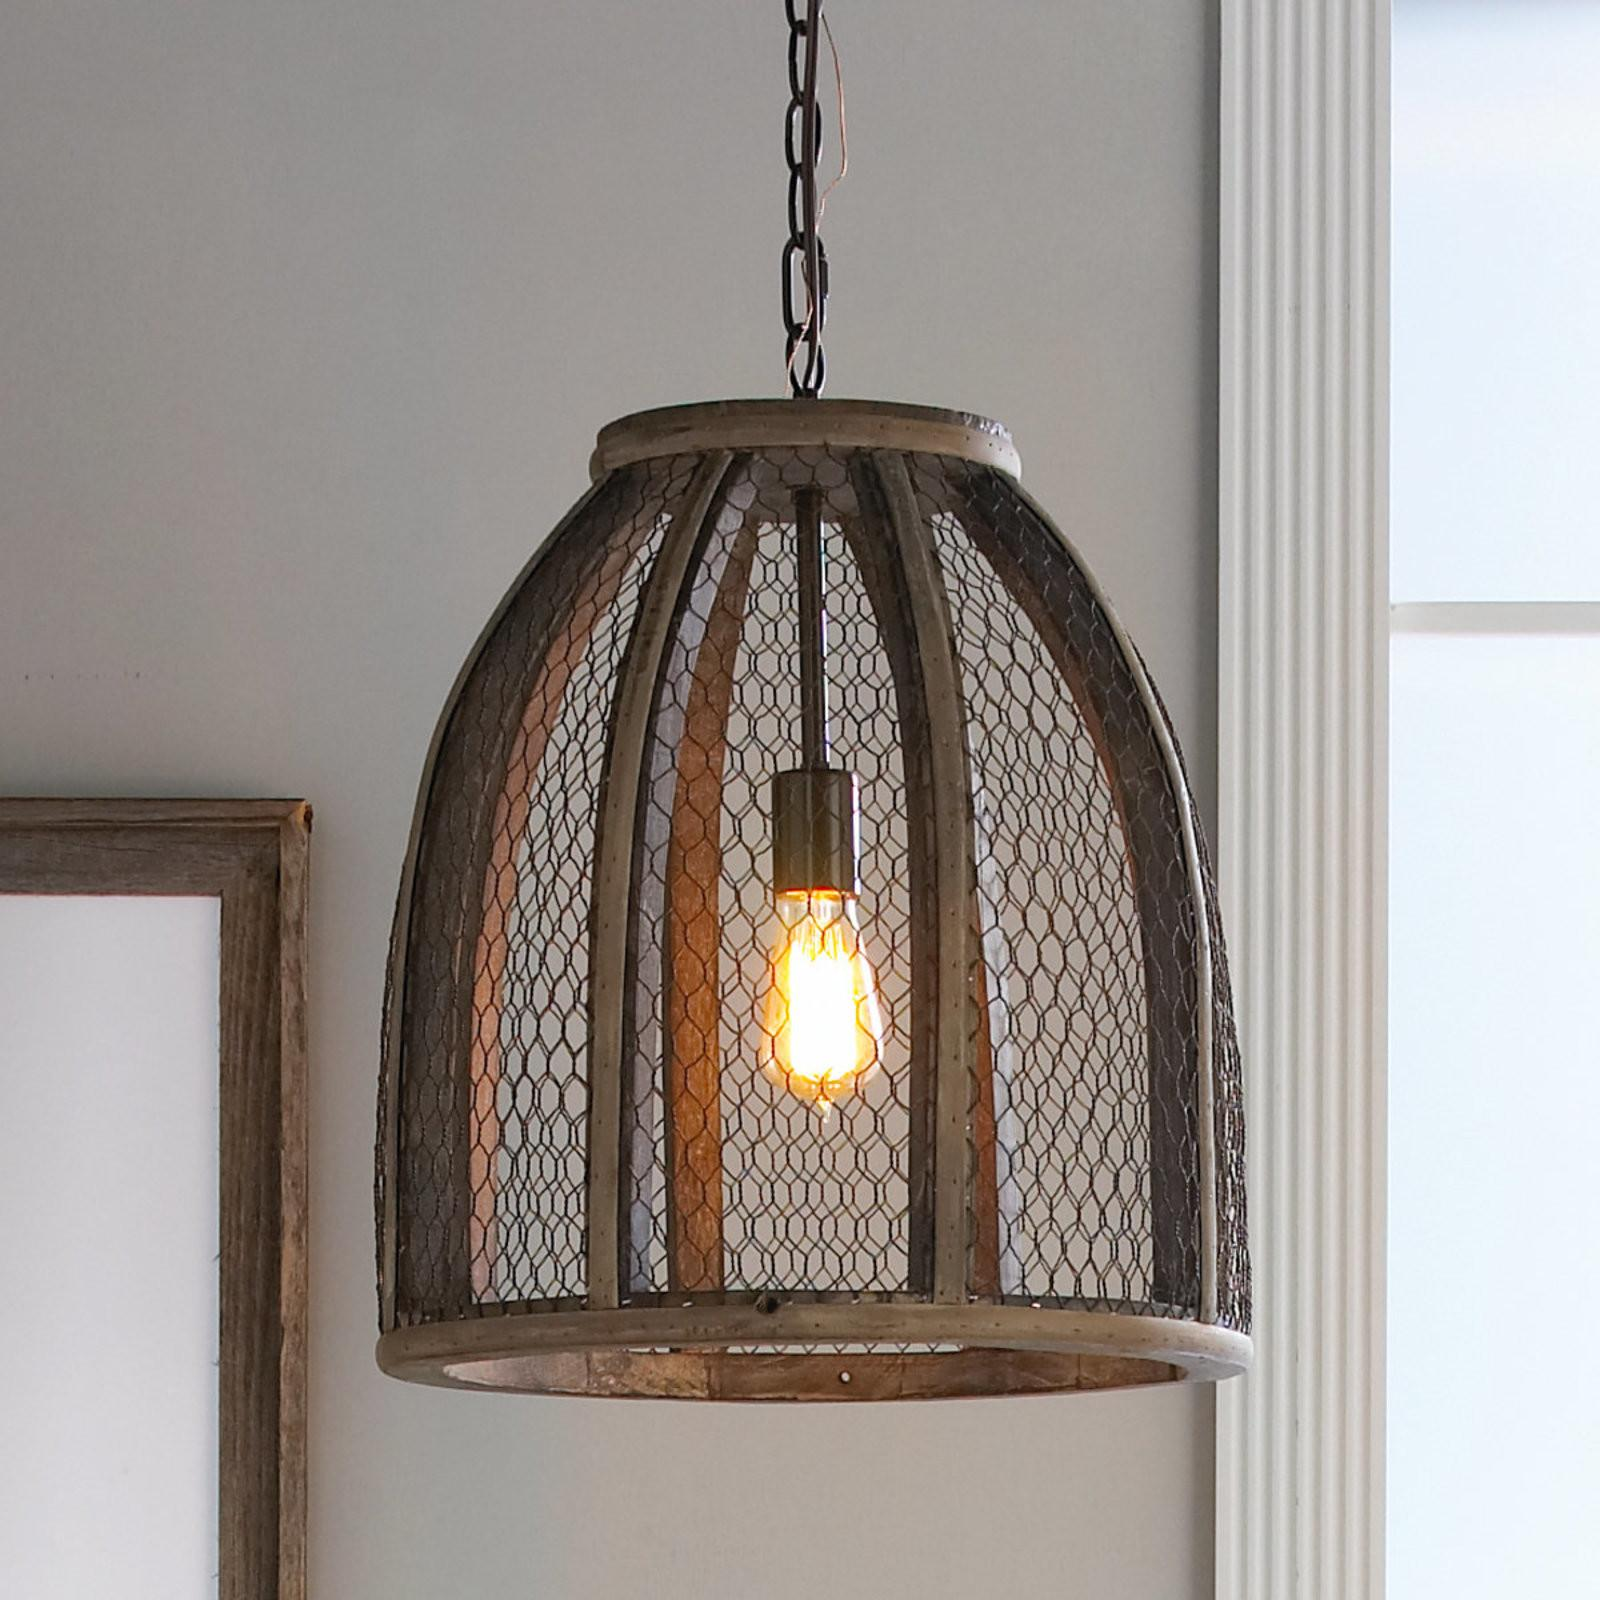 Chicken Wire Pendant Light Large Shades